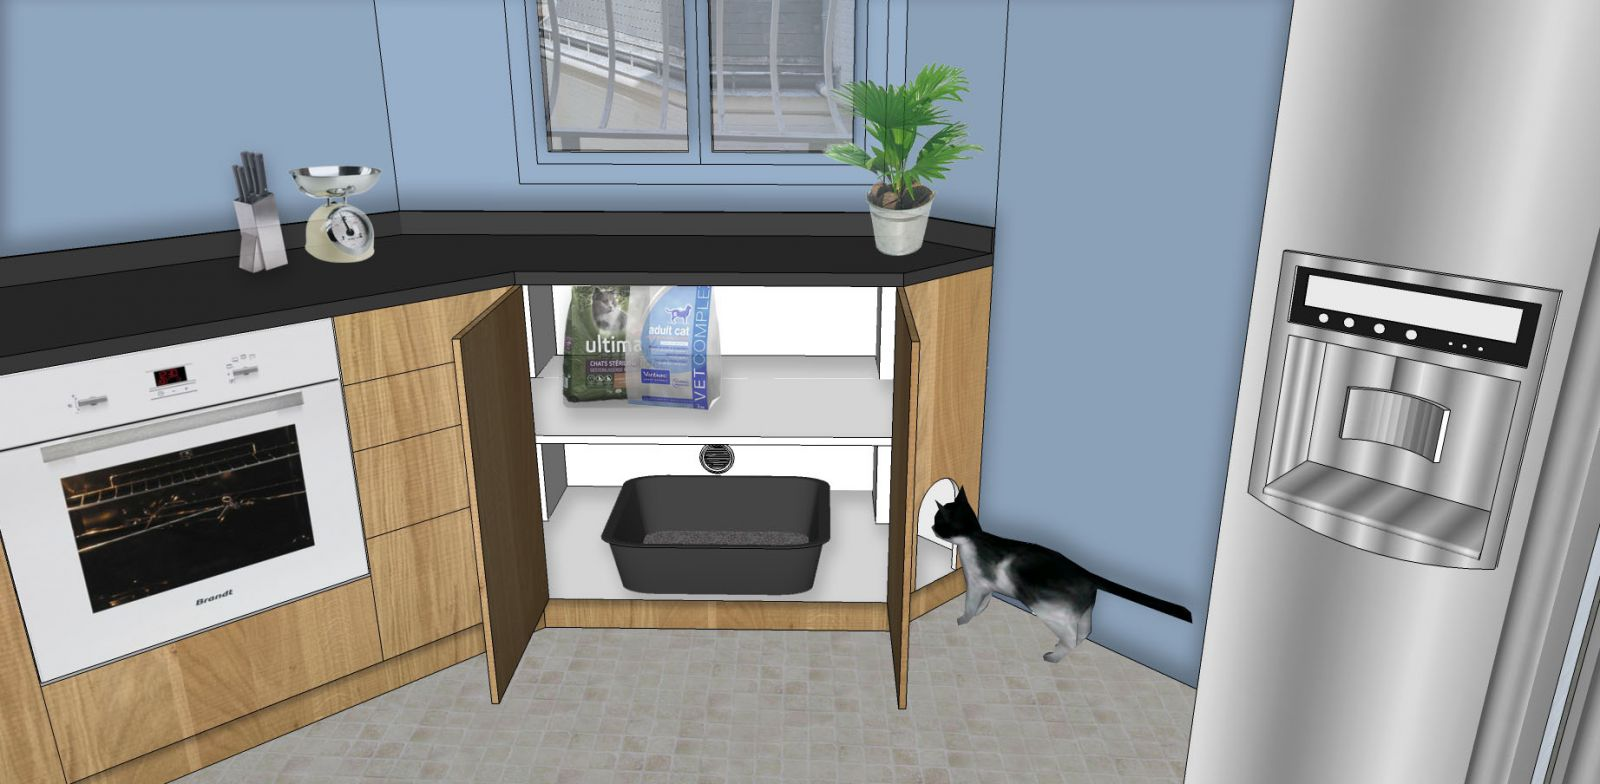 Application Pour Amenager Son Interieur Comment Aménager Son Appartement En Pensant à Son Chat